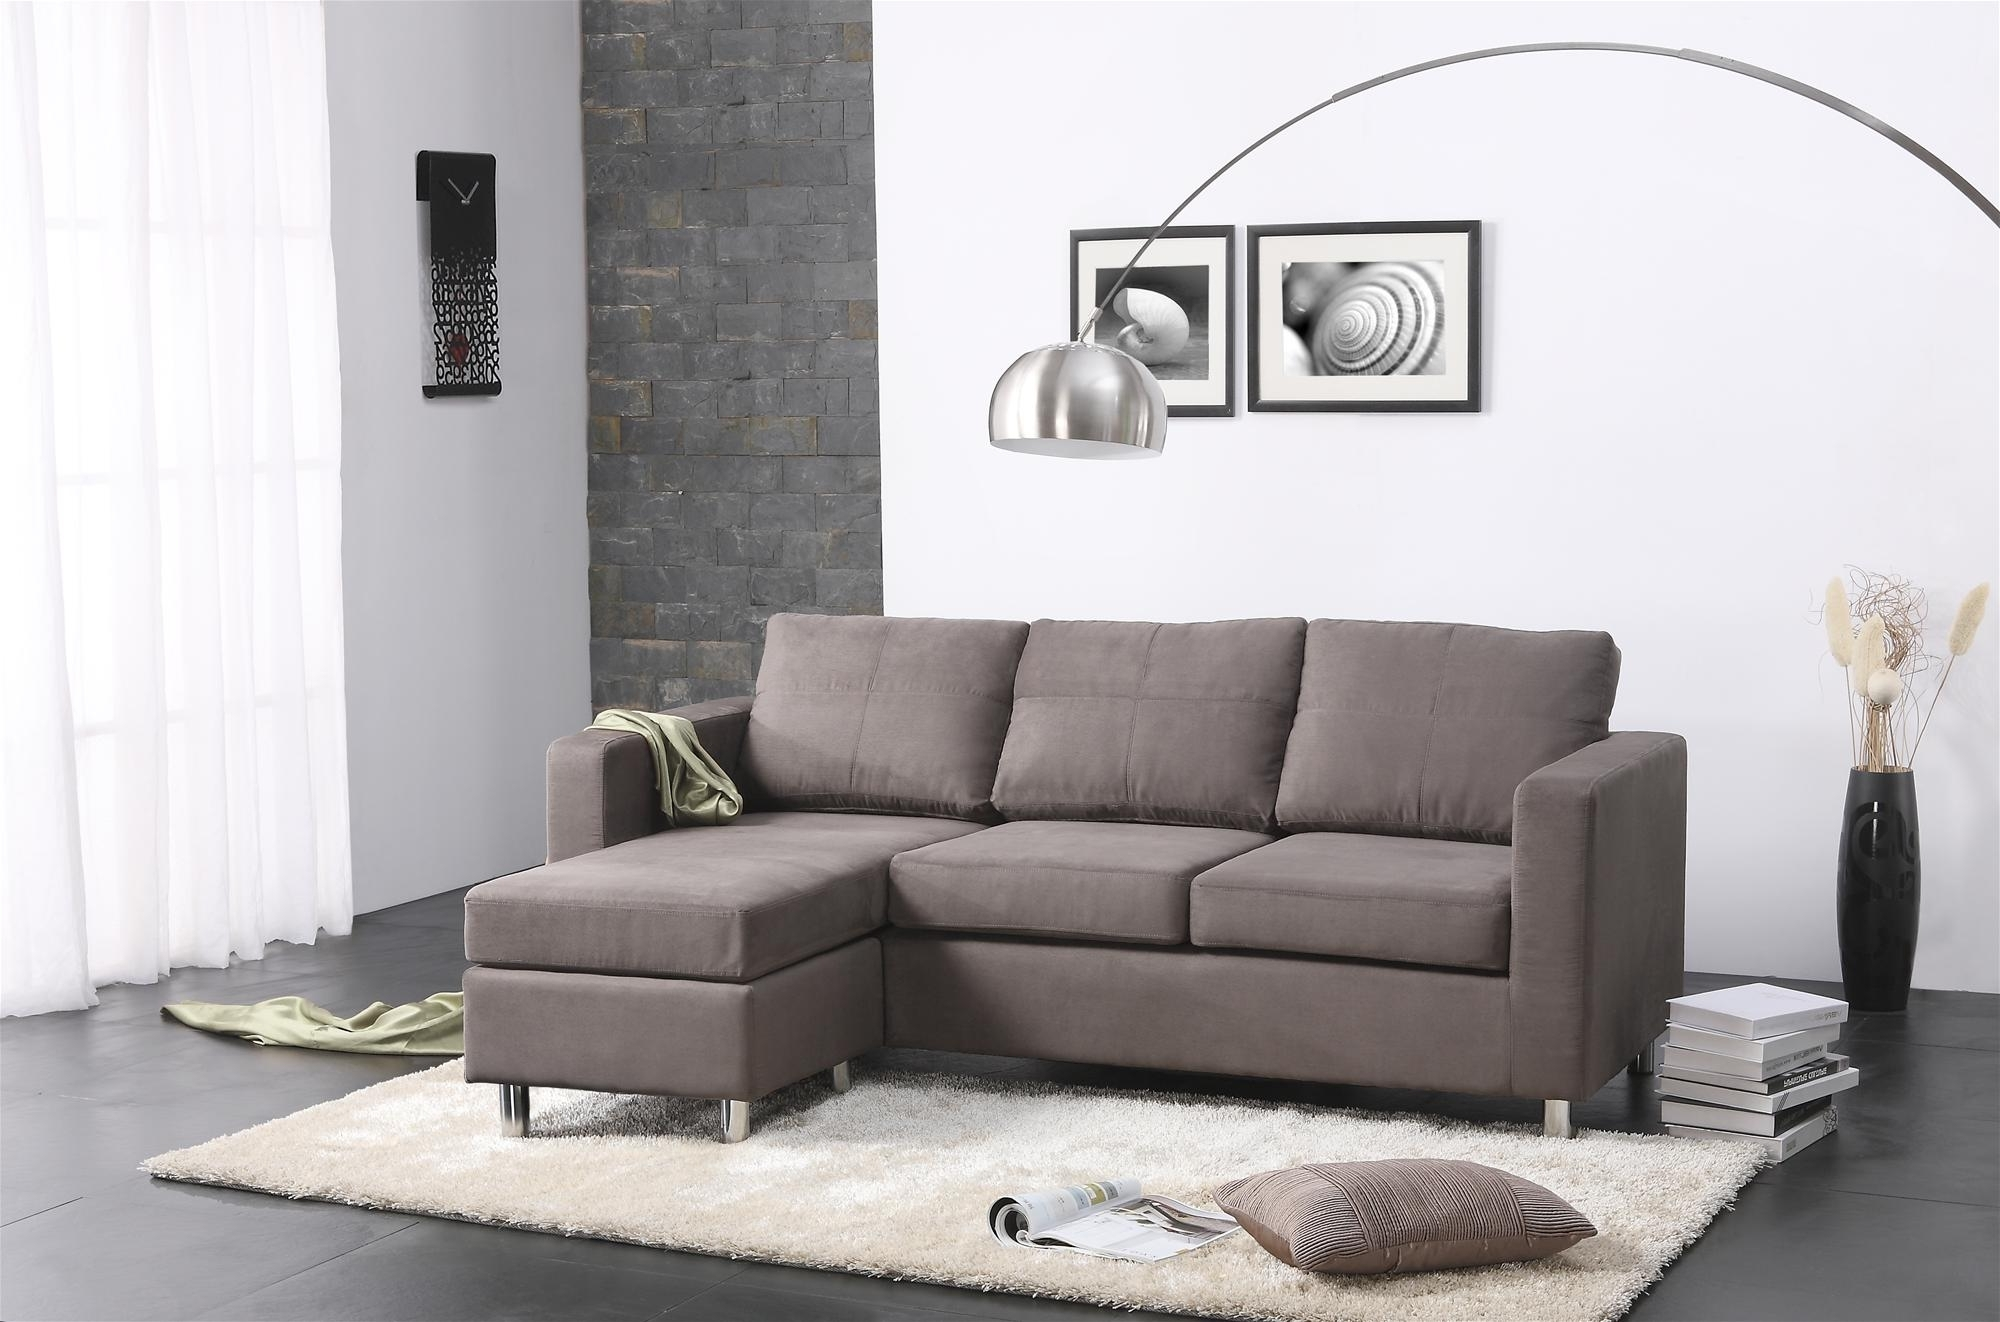 Widely Used Fancy Sectional Sofa For Small Spaces 46 For Contemporary Sofa Intended For Sectional Sofas In Small Spaces (View 11 of 15)